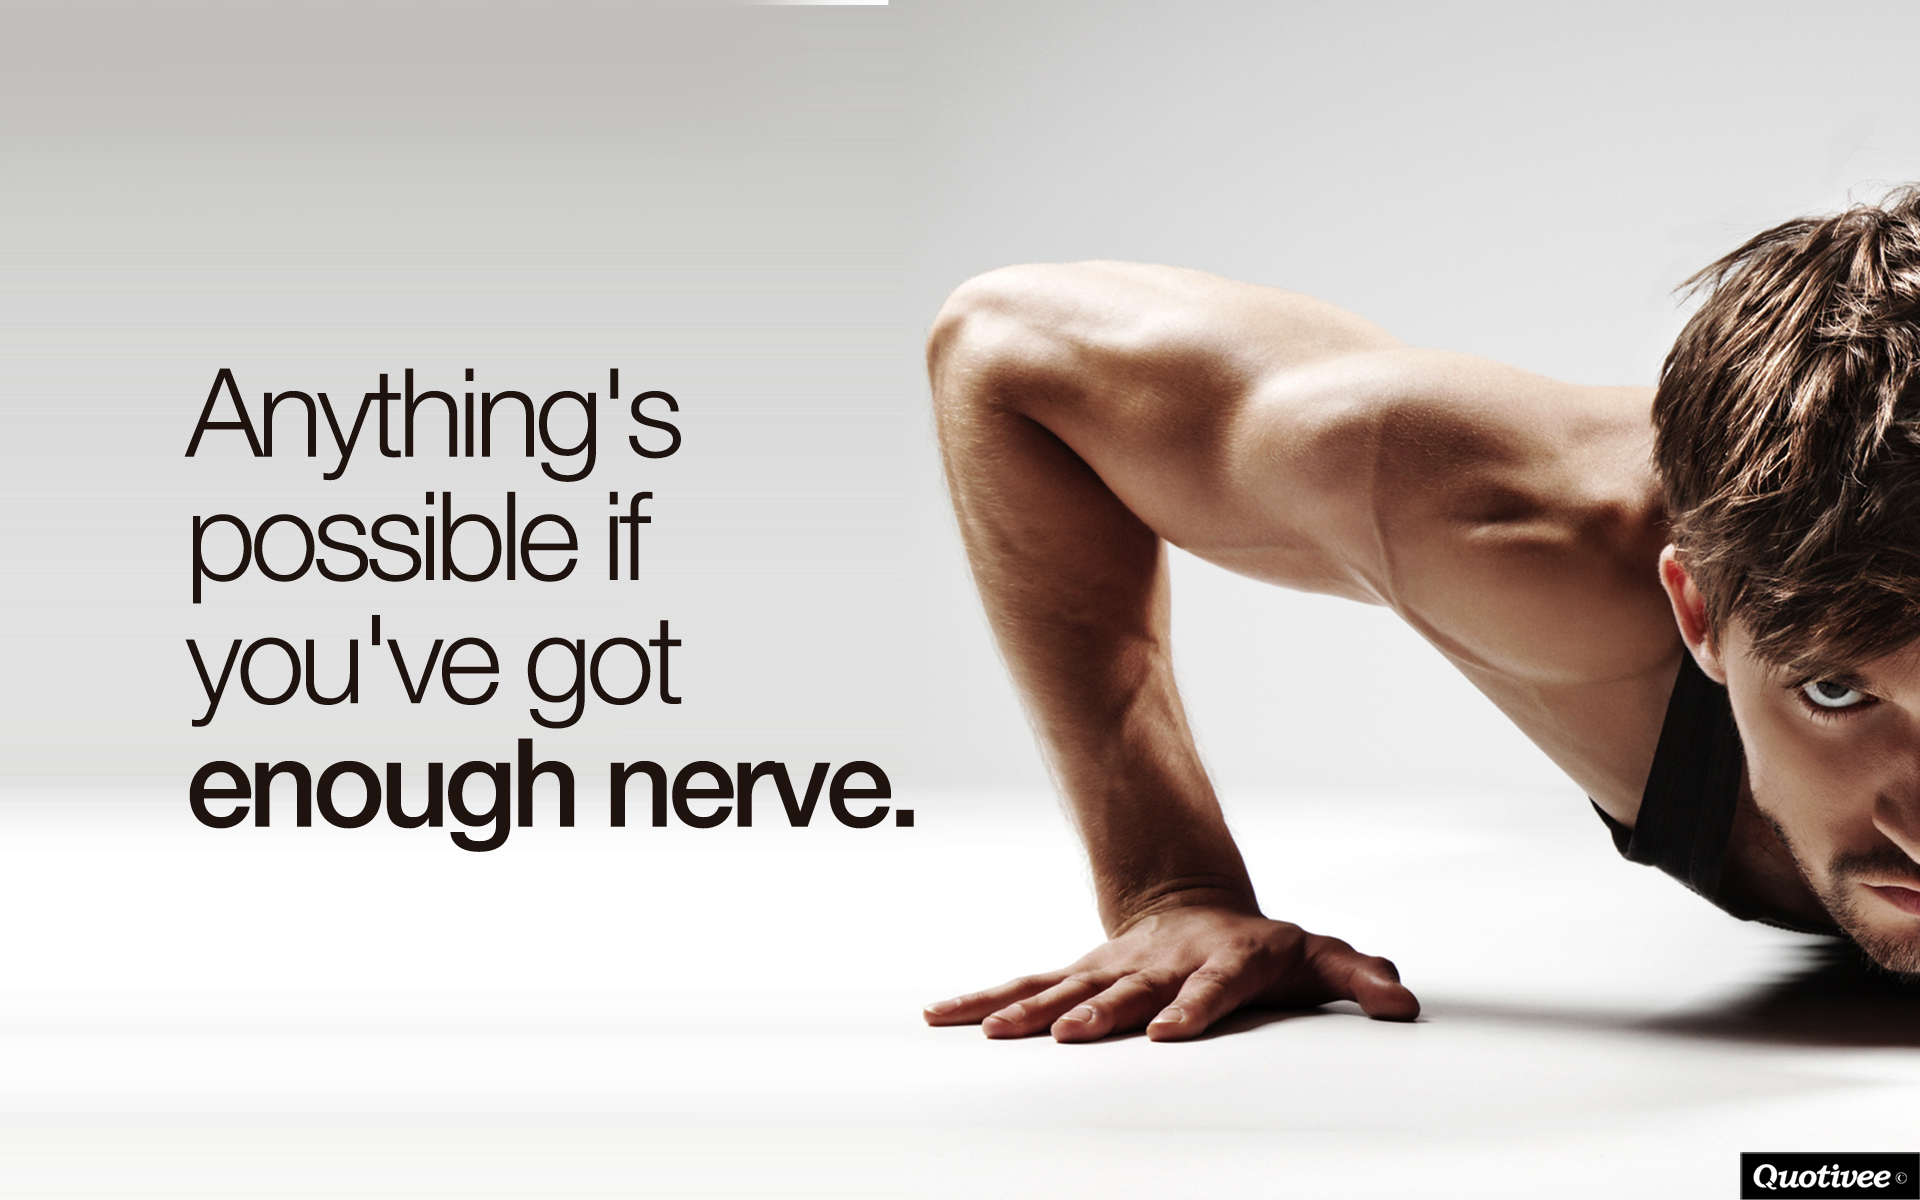 Willpower Quotes Wallpaper Anything S Possible Inspirational Quotes Quotivee